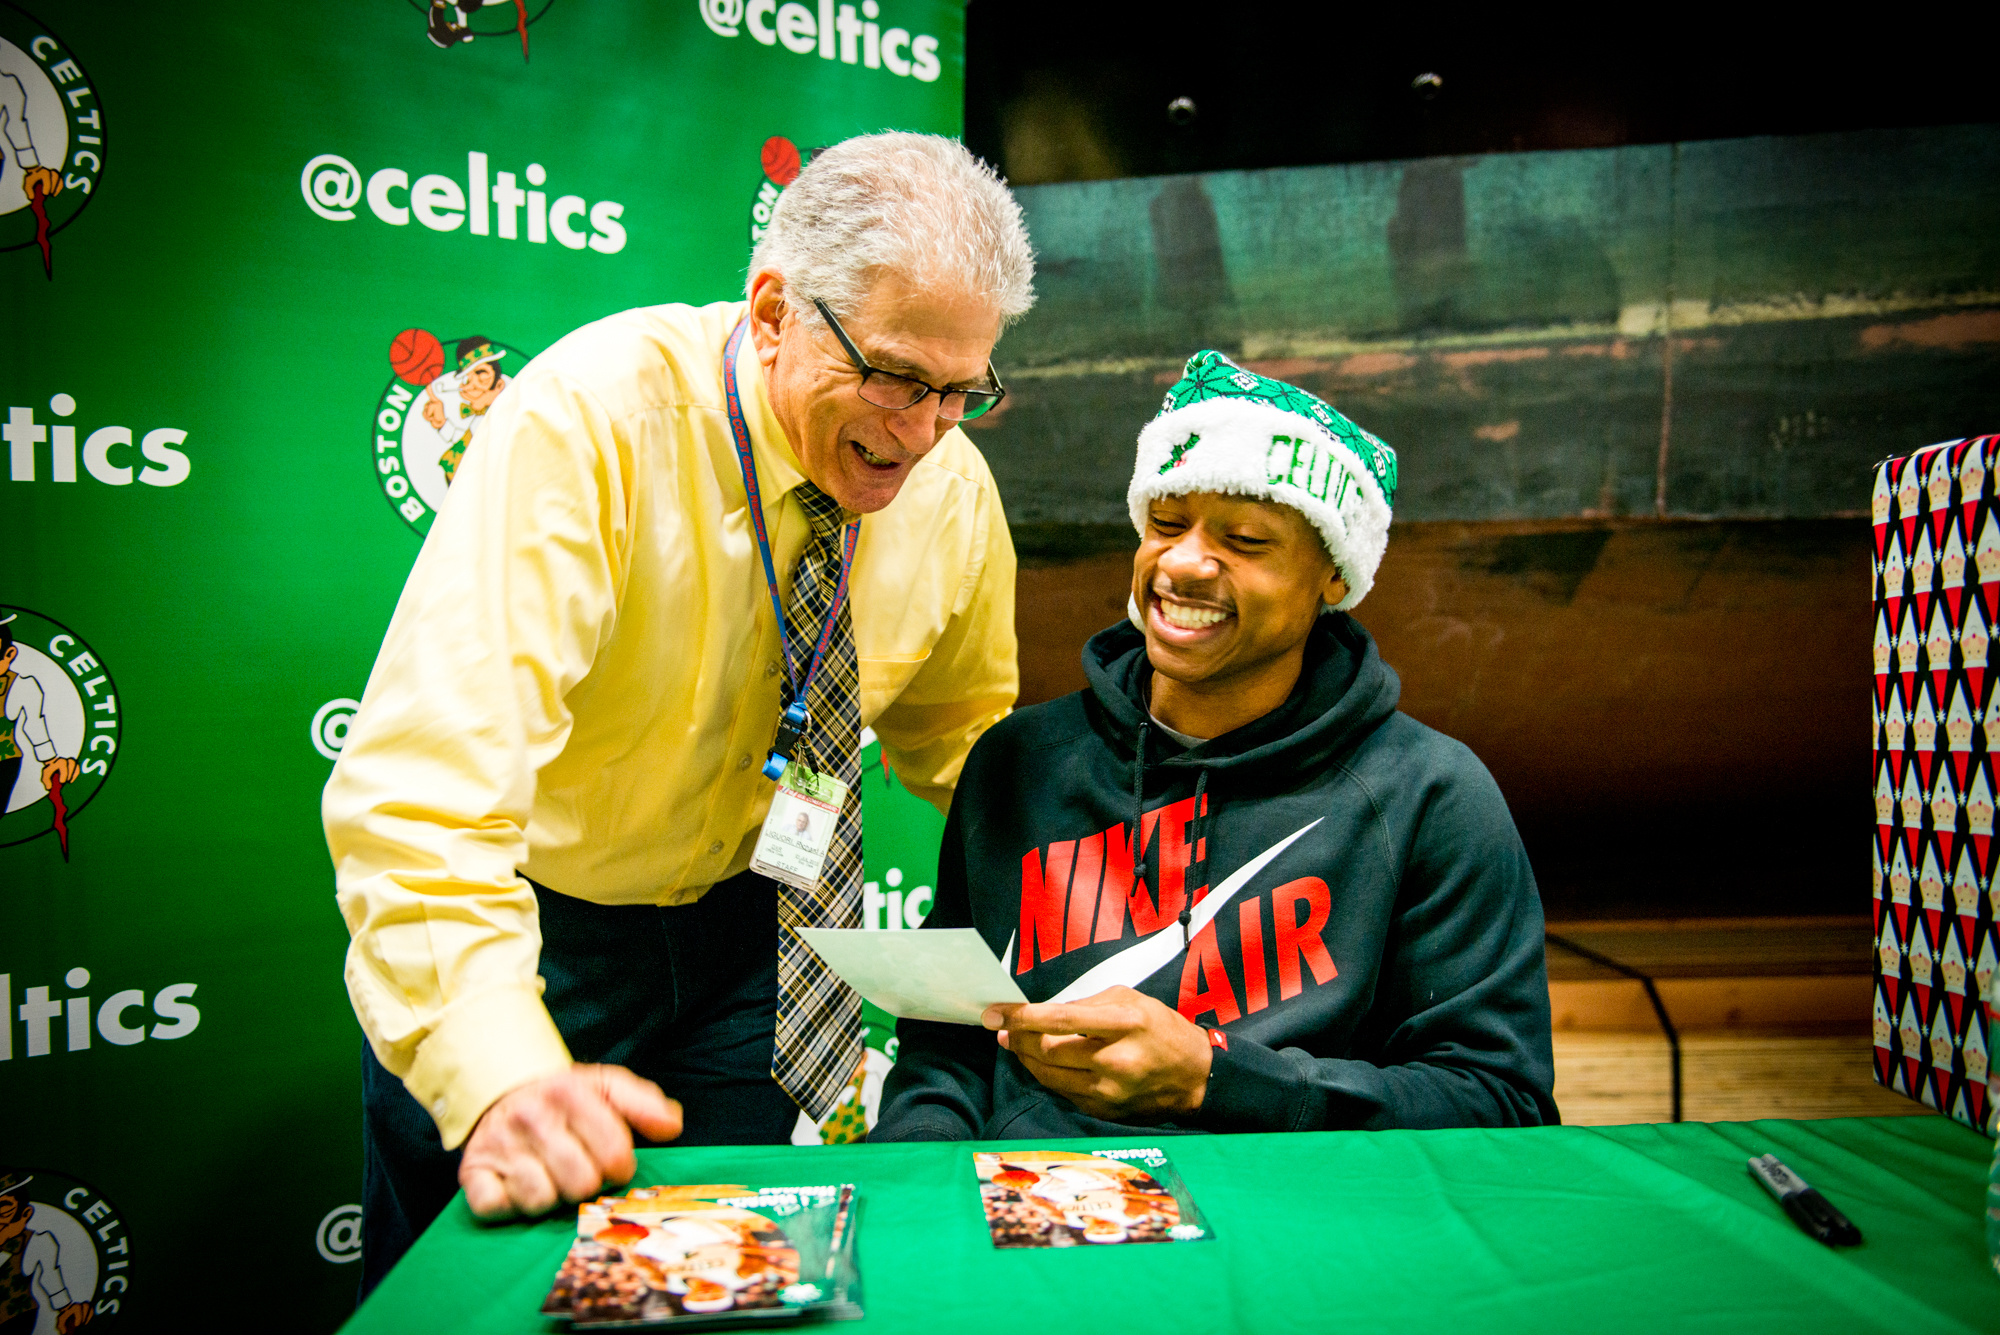 Celtics_Holiday_CoastGuard_121715-539.jpg